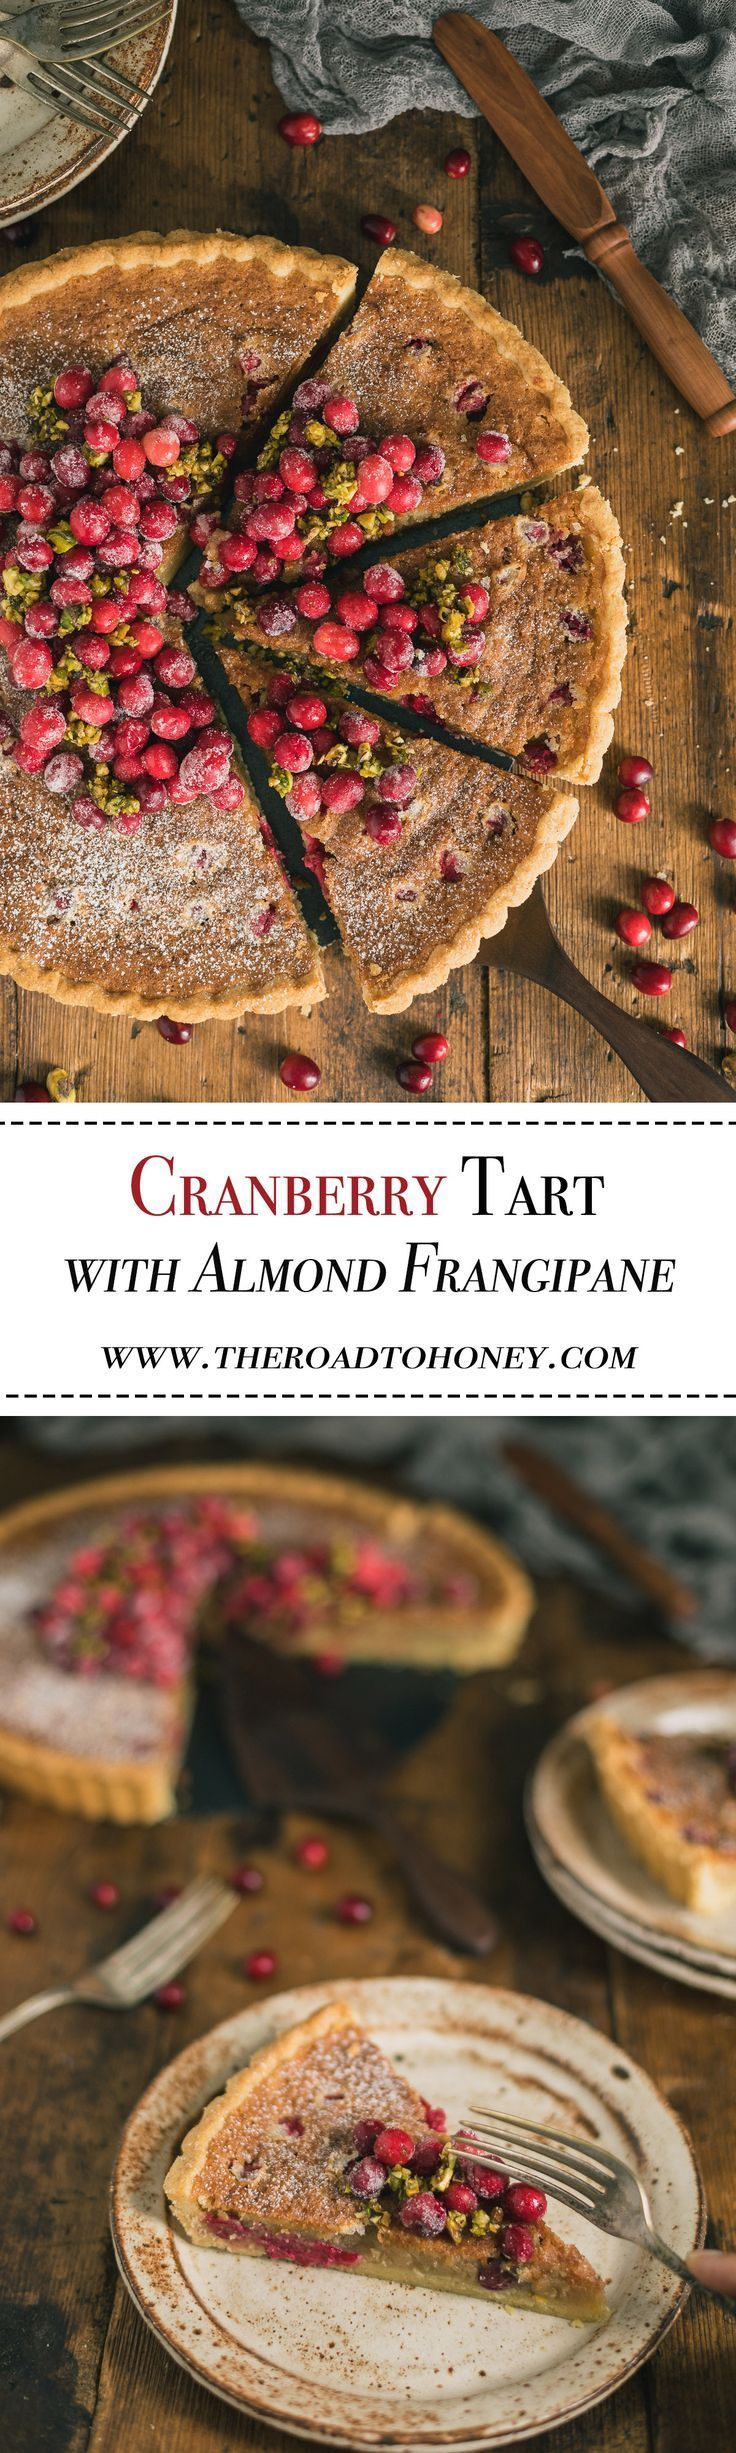 Cranberry Tart with Almond Frangipane - This French style fruit tart stars tart cranberries & a nutty almond frangipane nestled in a buttery pastry shell & topped with sugared cranberries & honeyed pistachios. It's elegant, yet easy & sure to impress at parties. #CranberryRecipes #WinterRecipesDessert #HolidayRecipesDesserts